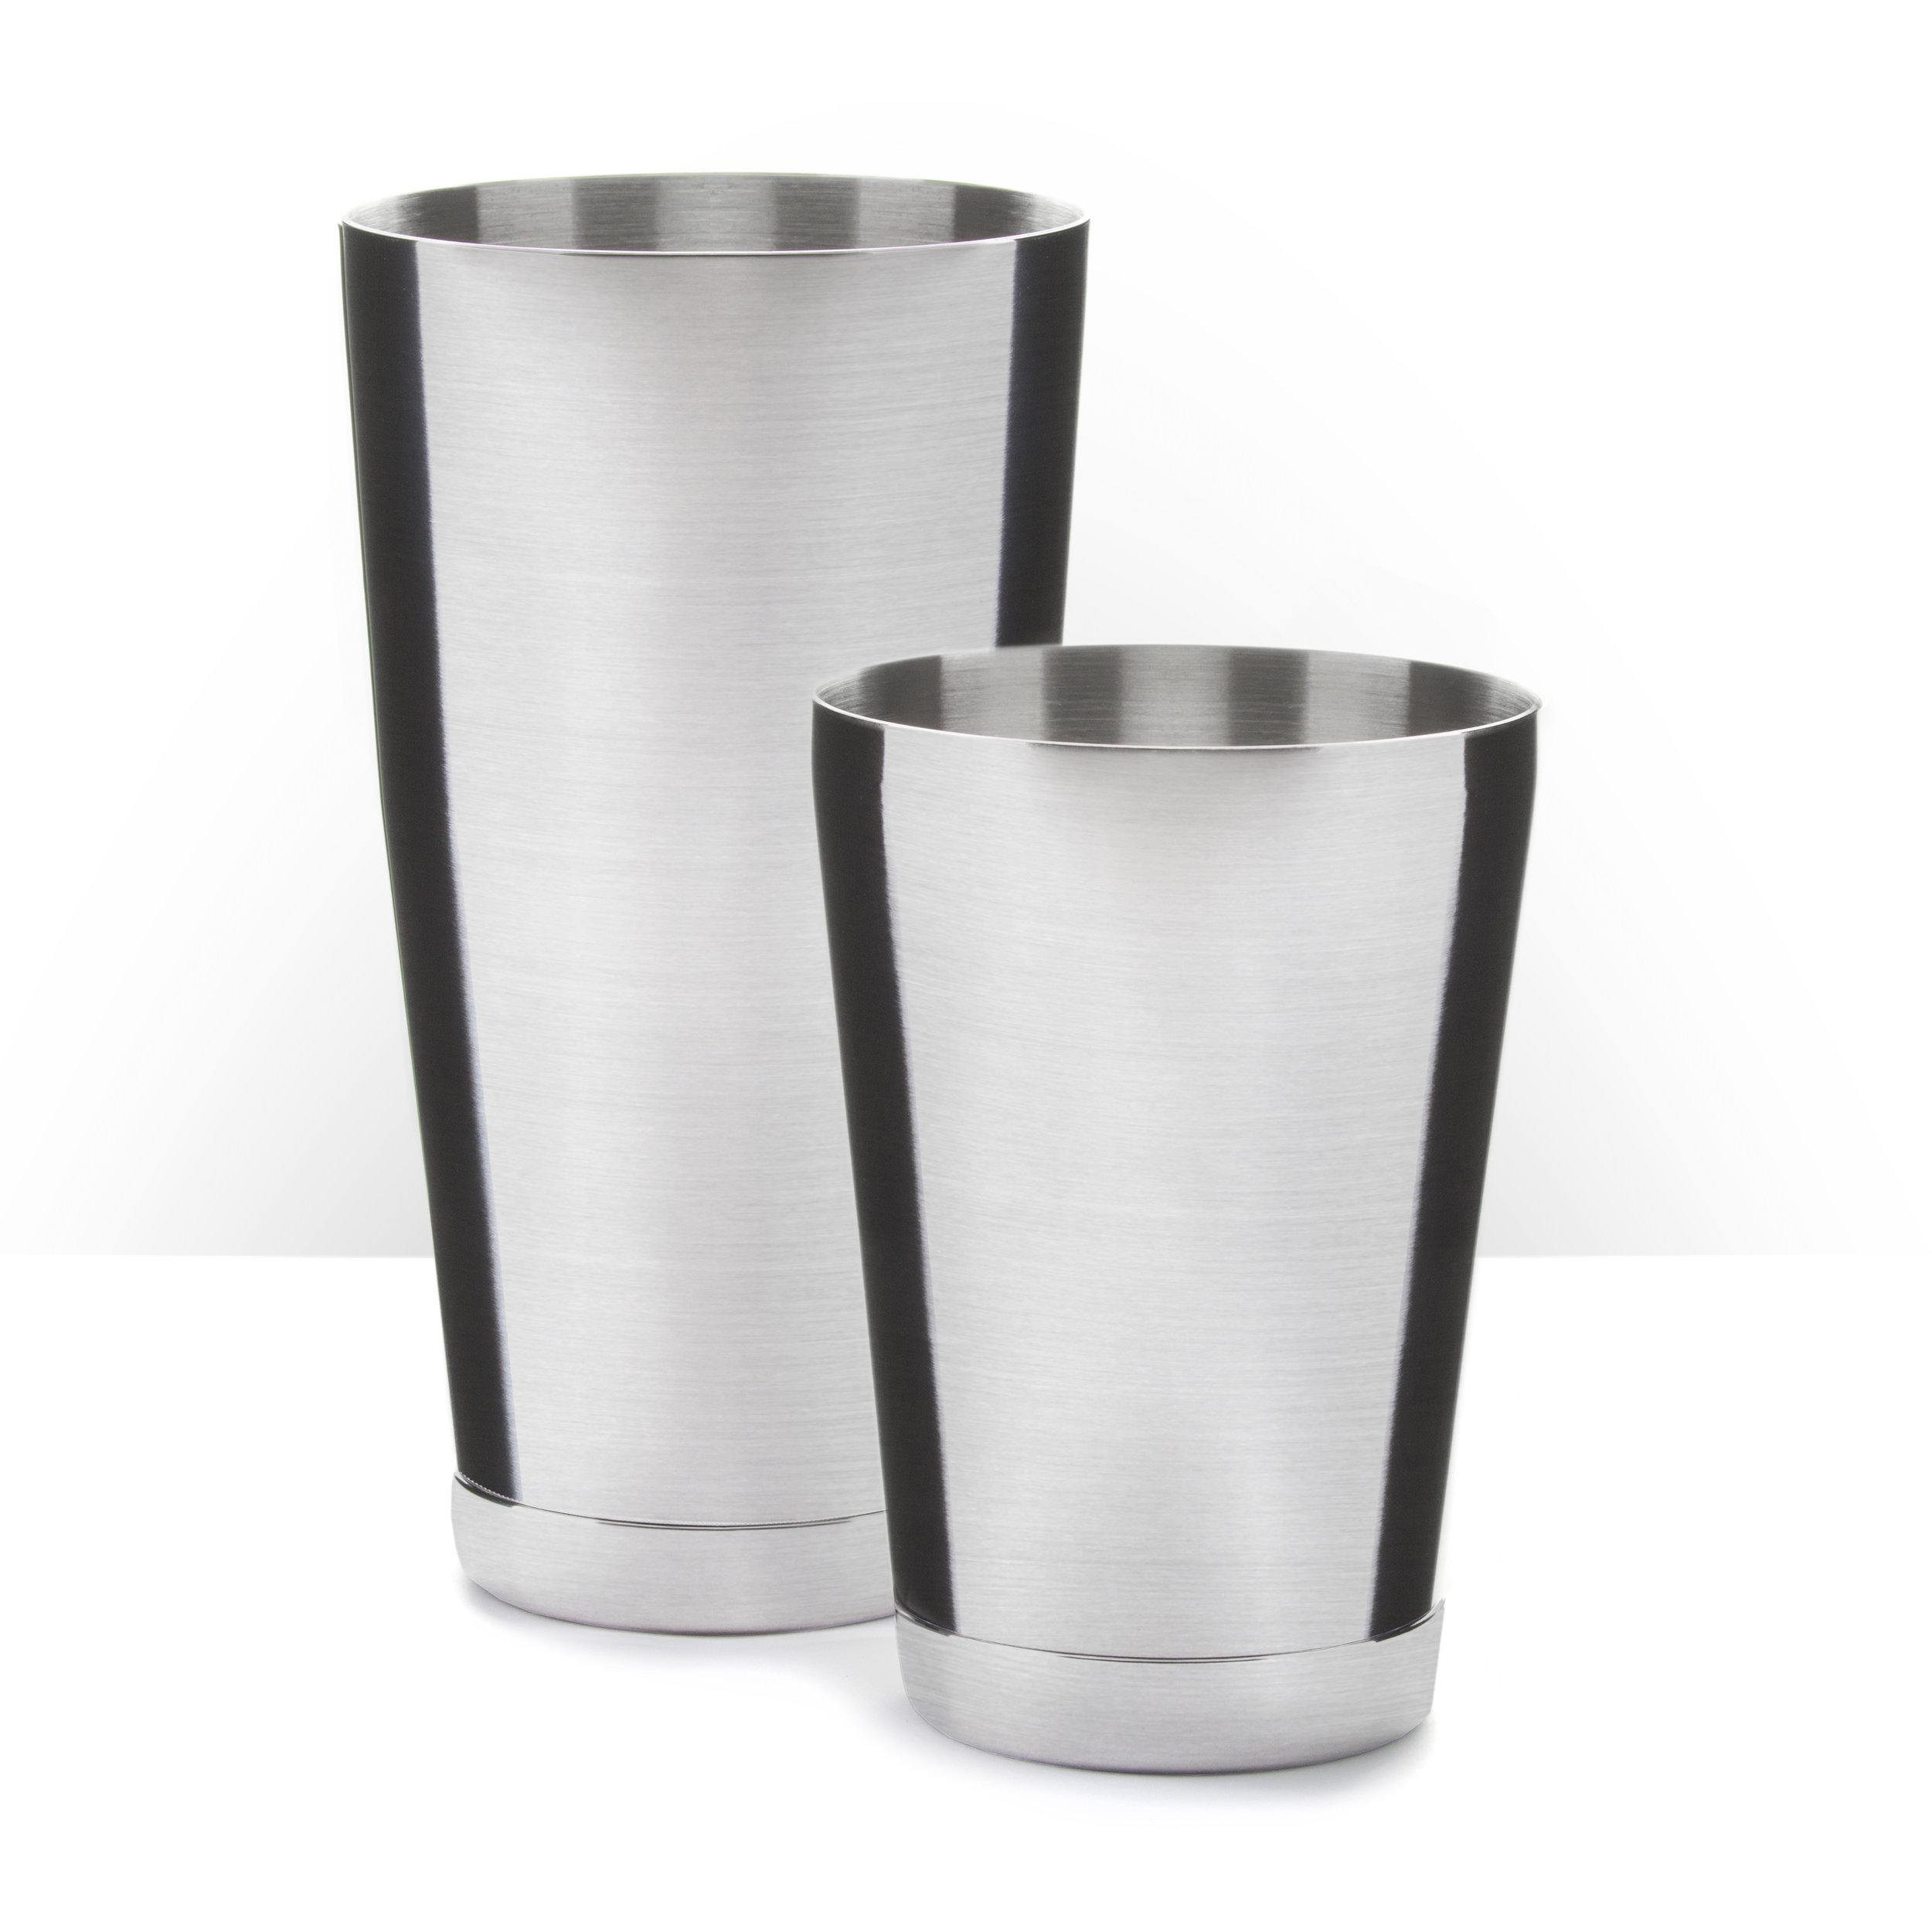 Founder's Tin Set - Brushed Stainless Steel, 28oz. & 18oz